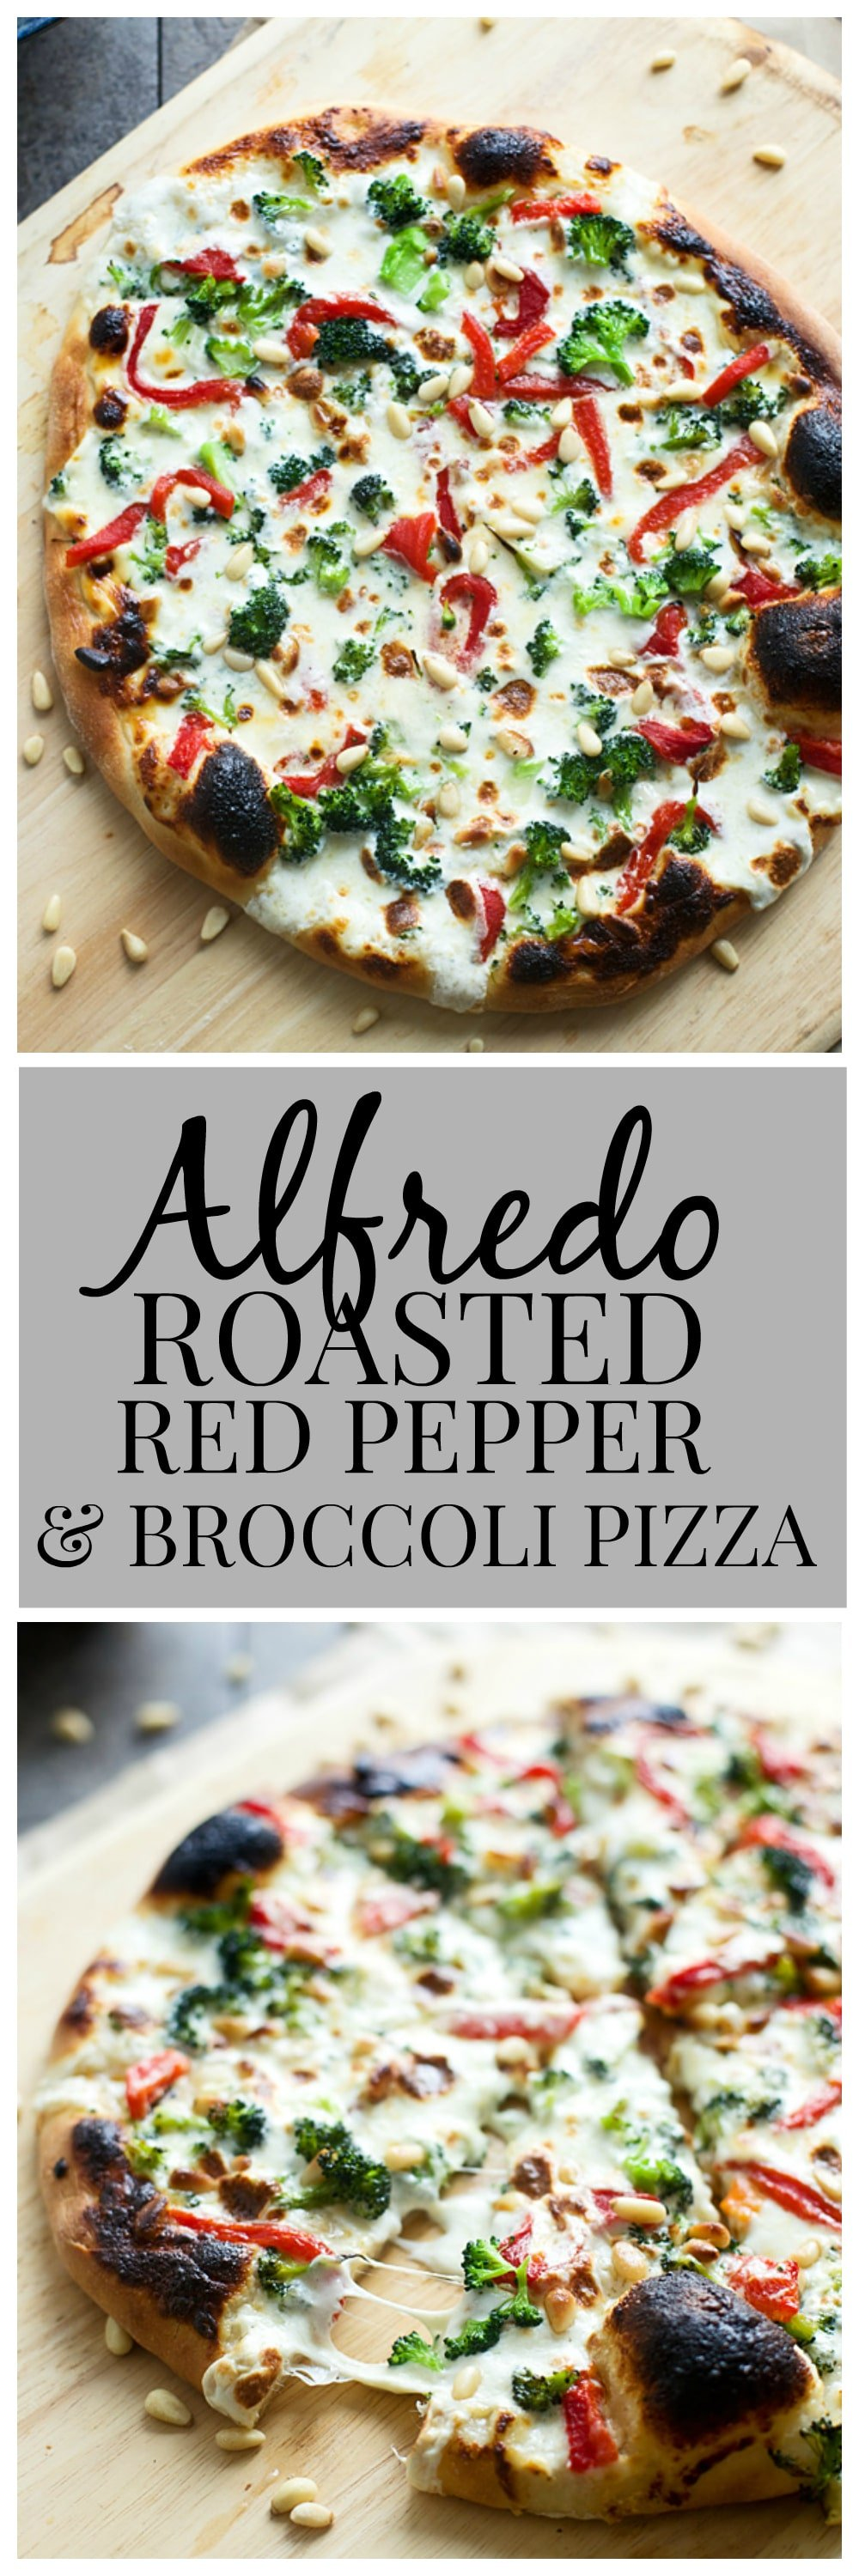 Alfredo, Roasted Red Pepper and Broccoli Pizza